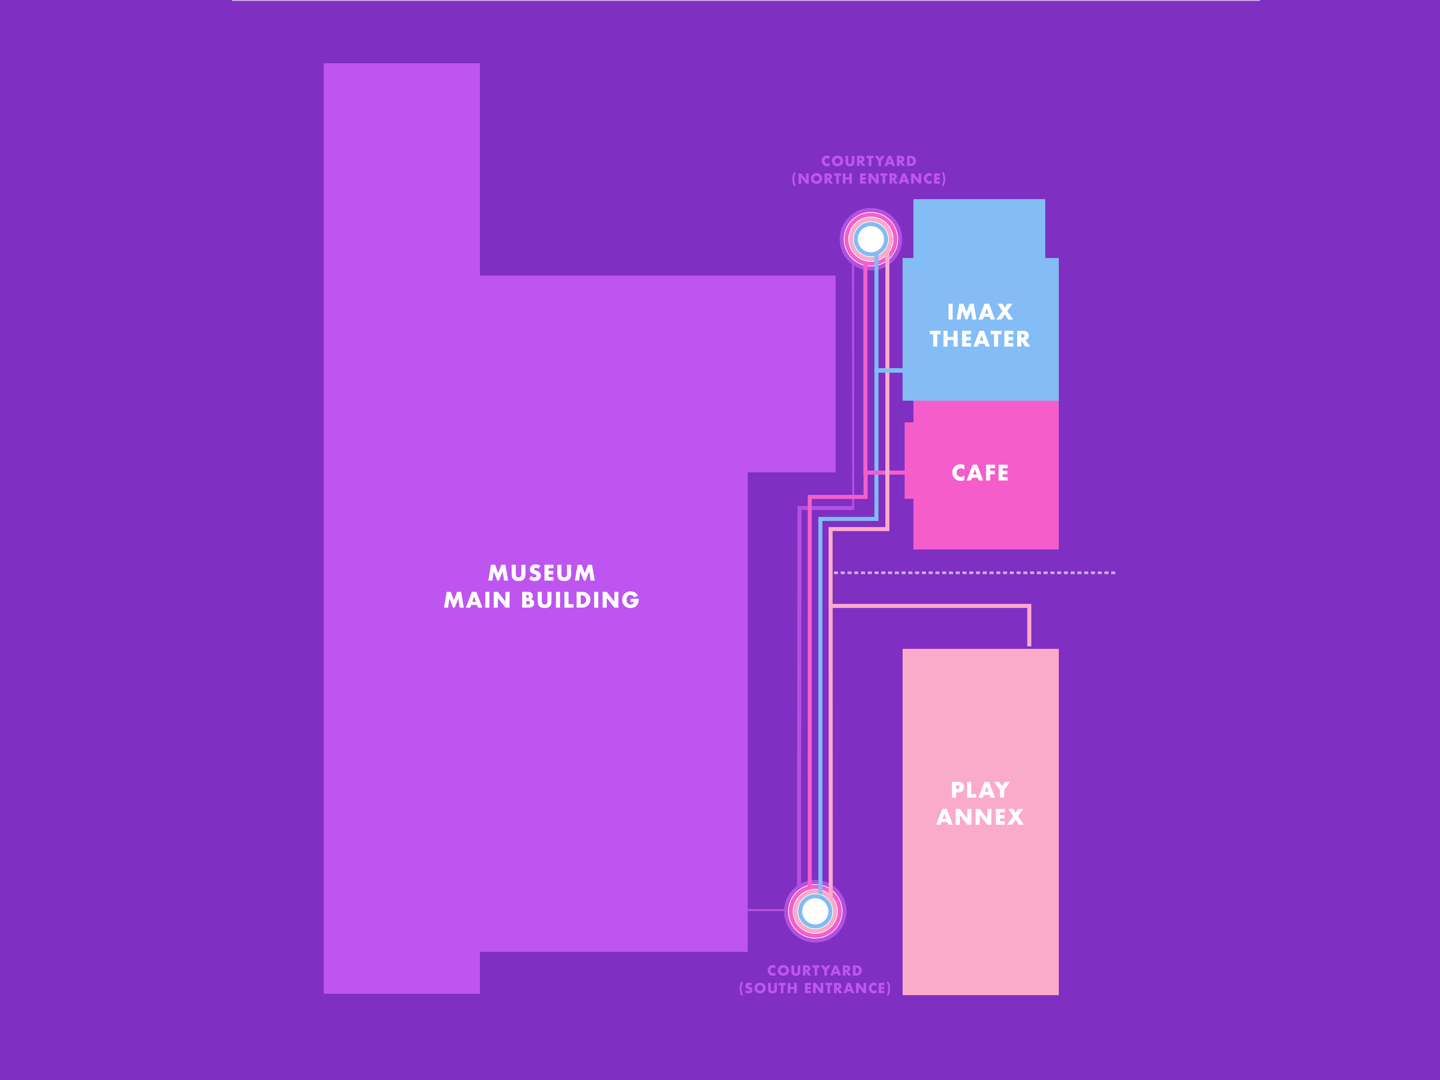 Map of the placement of wayfinding lines on the museum courtyard